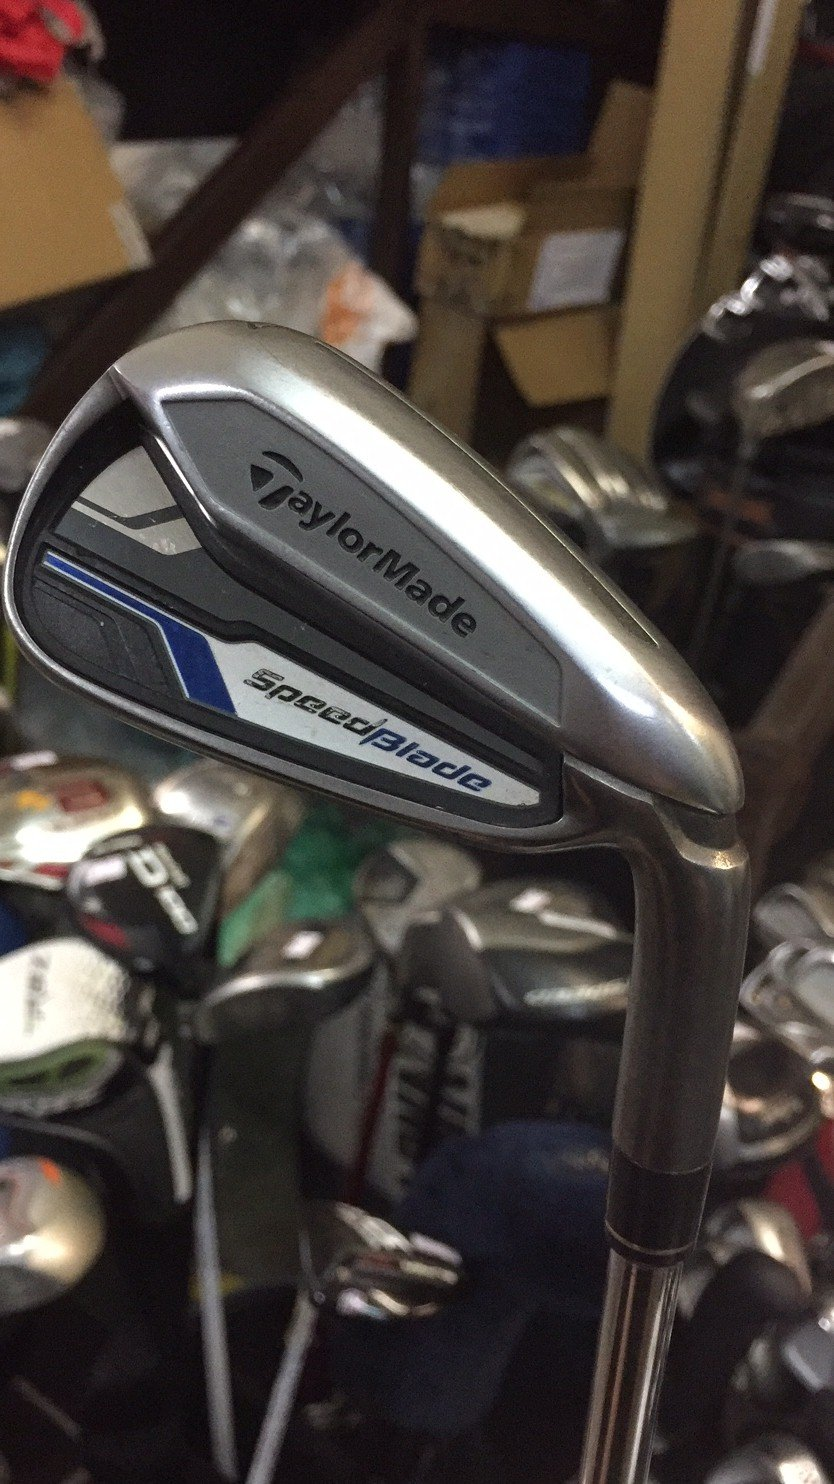 Used Taylor Made Speedblade 5-PS iron set